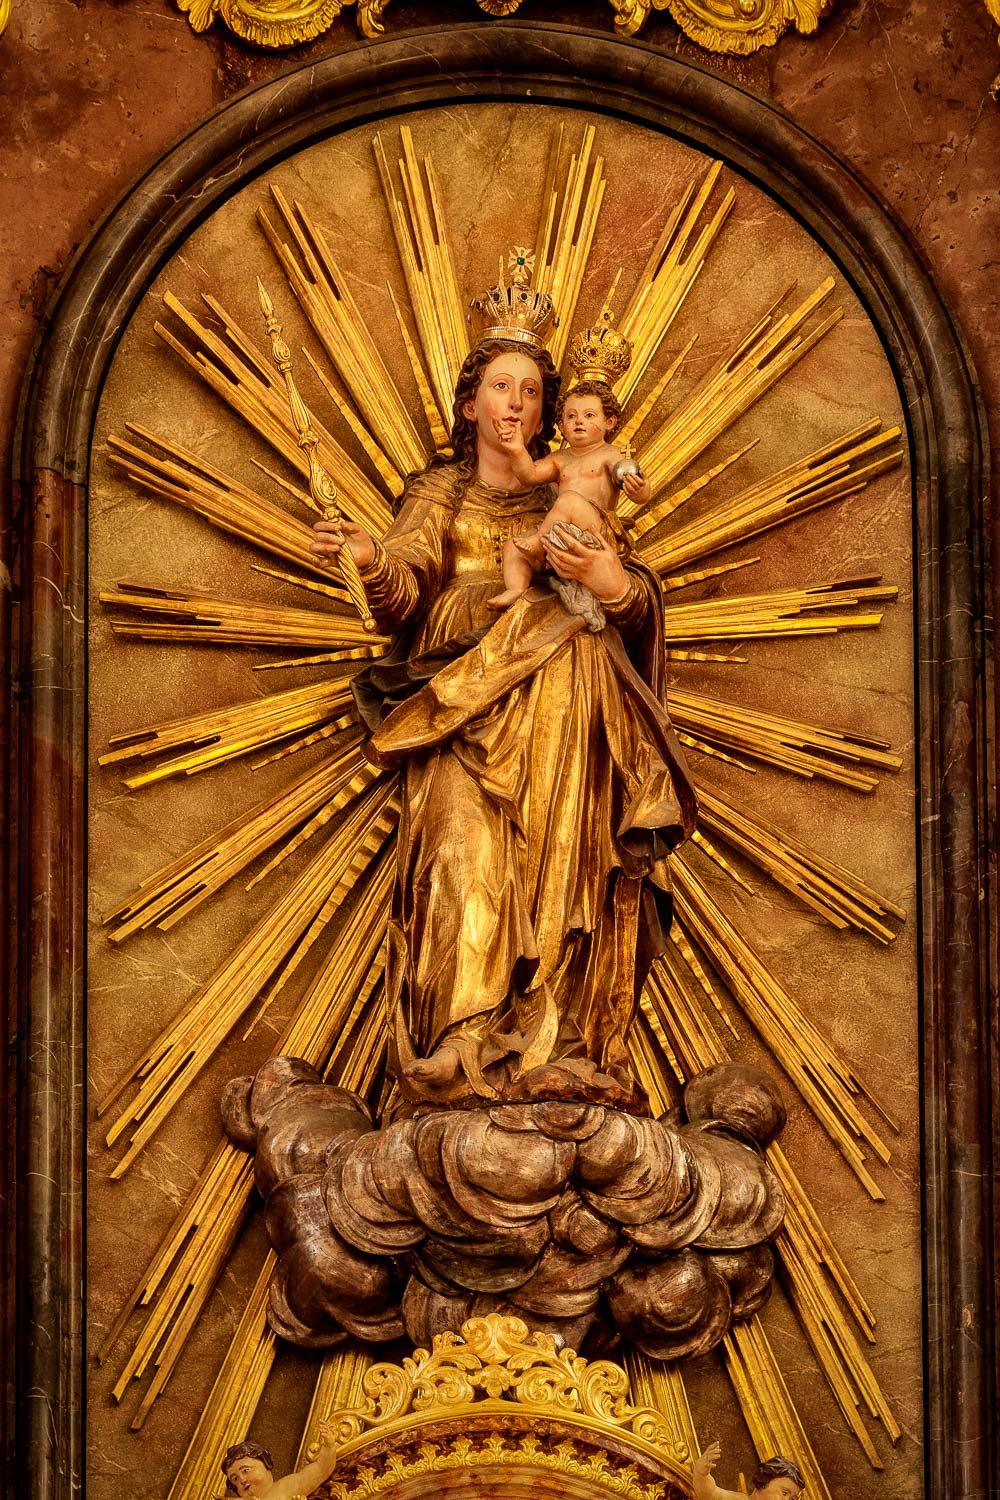 A statue of    Mary and Jesus    on an inner wall of    St. Sebastian's Church    in    Salzburg, Austria   .